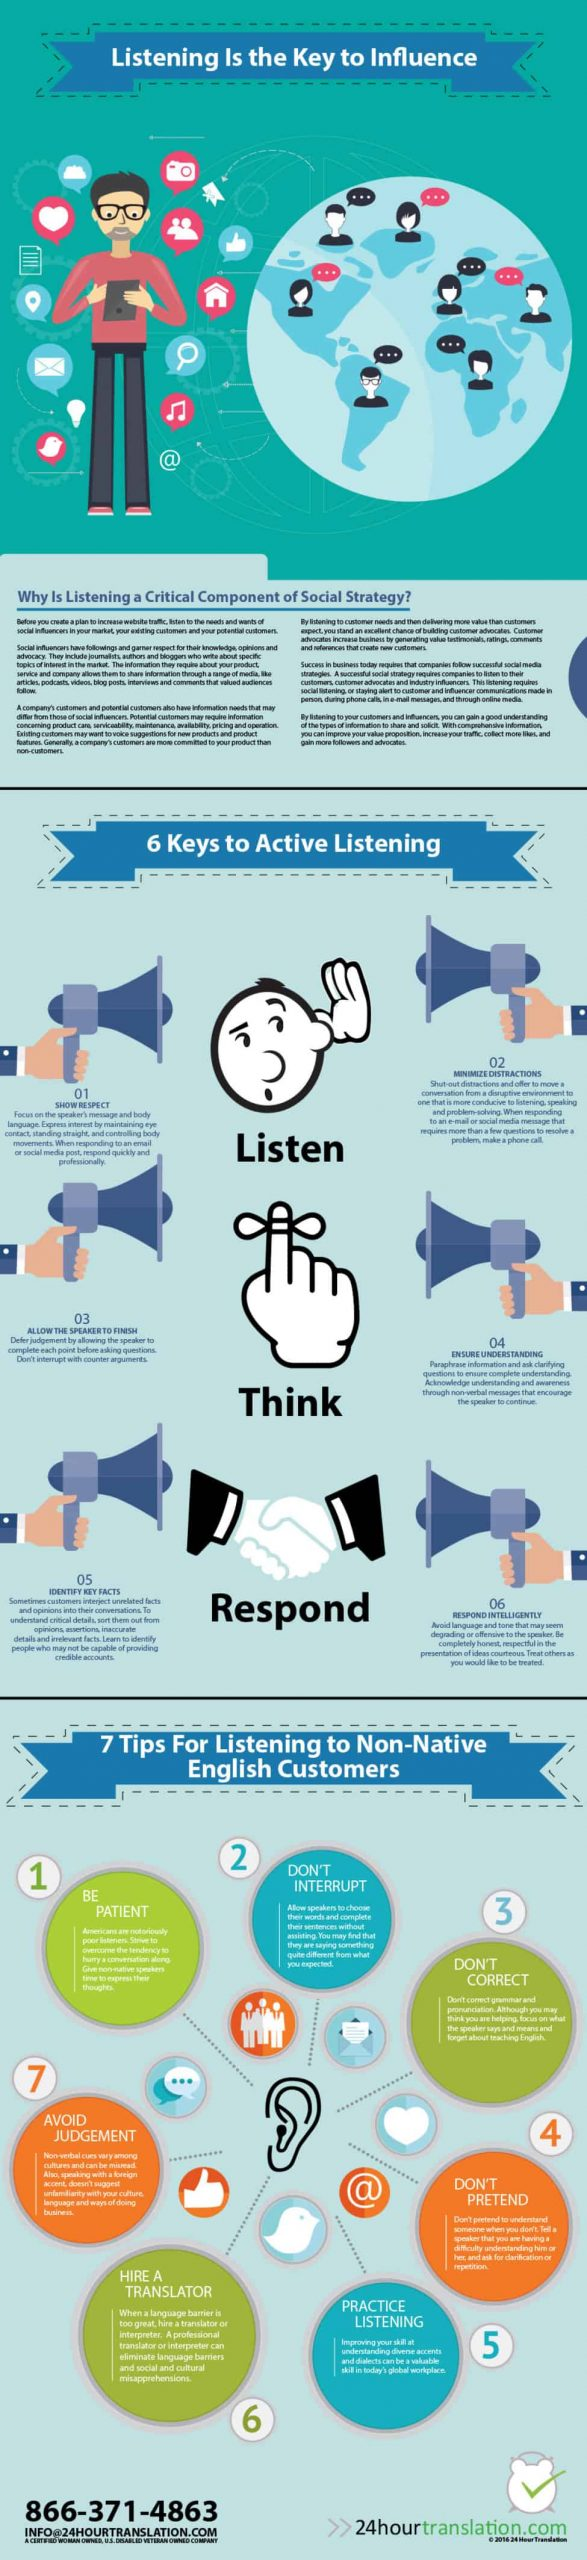 Listening Is the Key to Influence